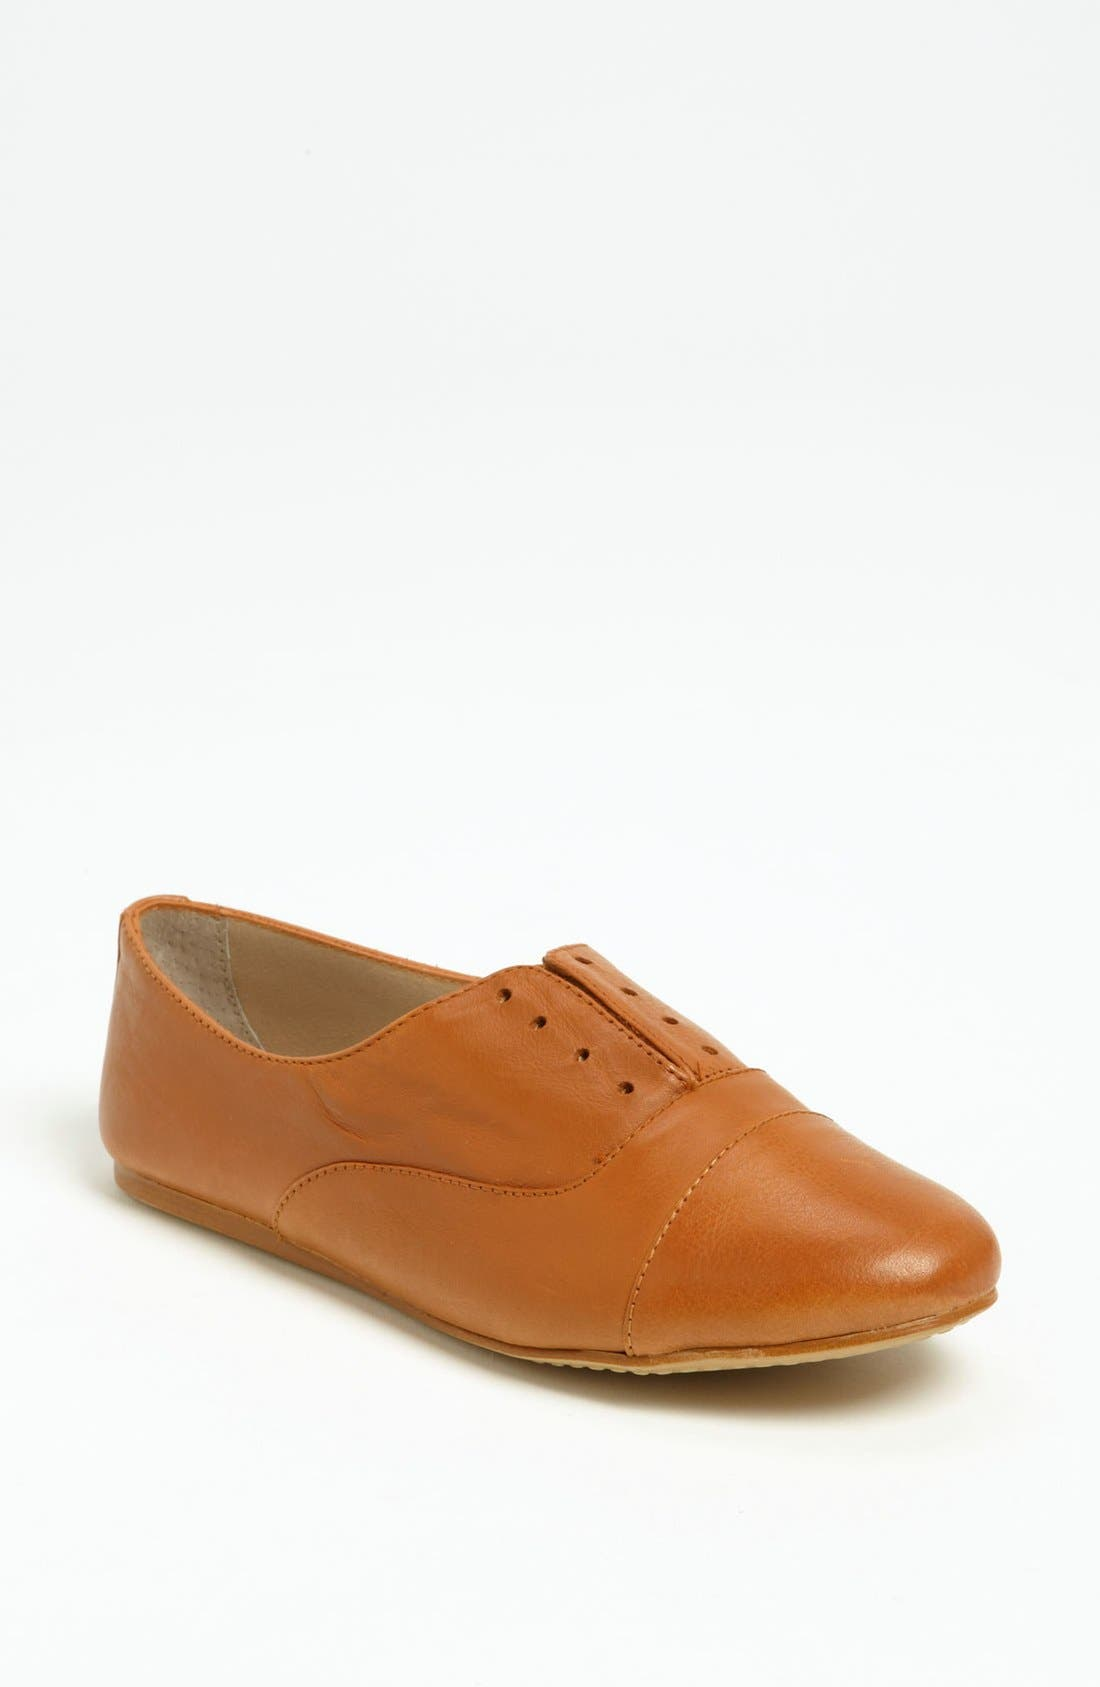 Alternate Image 1 Selected - Steve Madden 'Tuddor' Flat